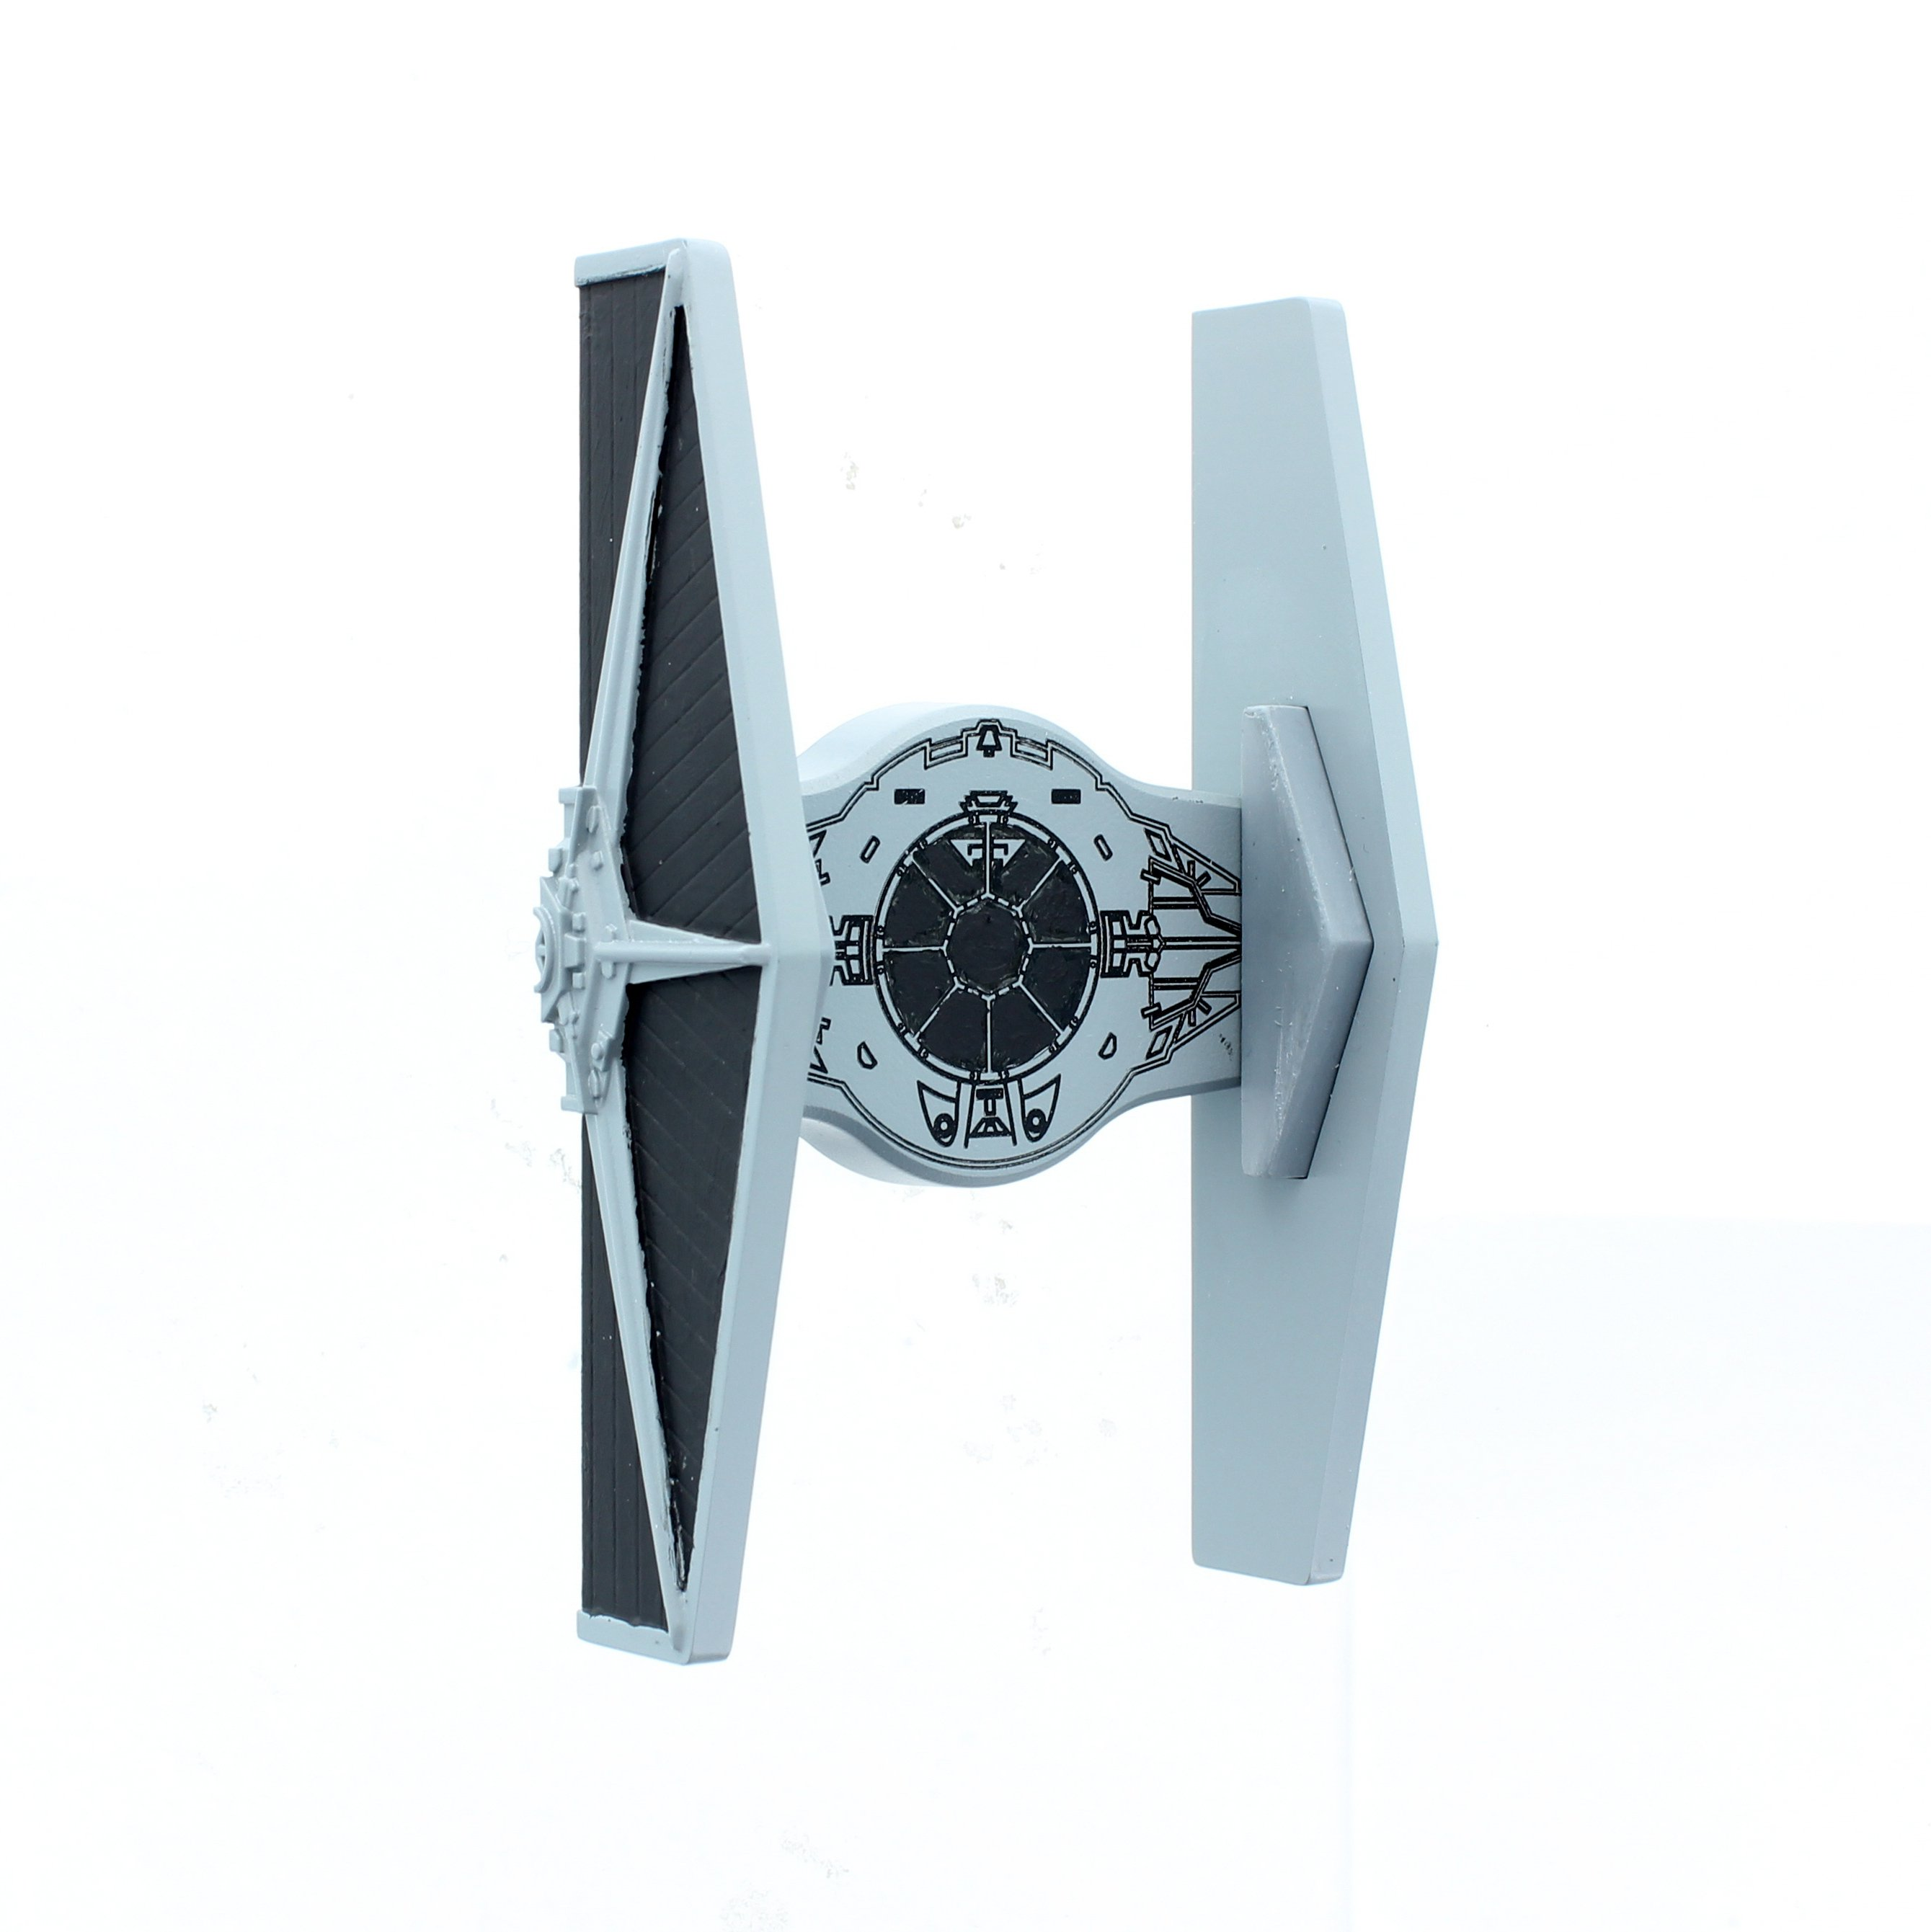 Star Wars Tie fighter mobile holder Image